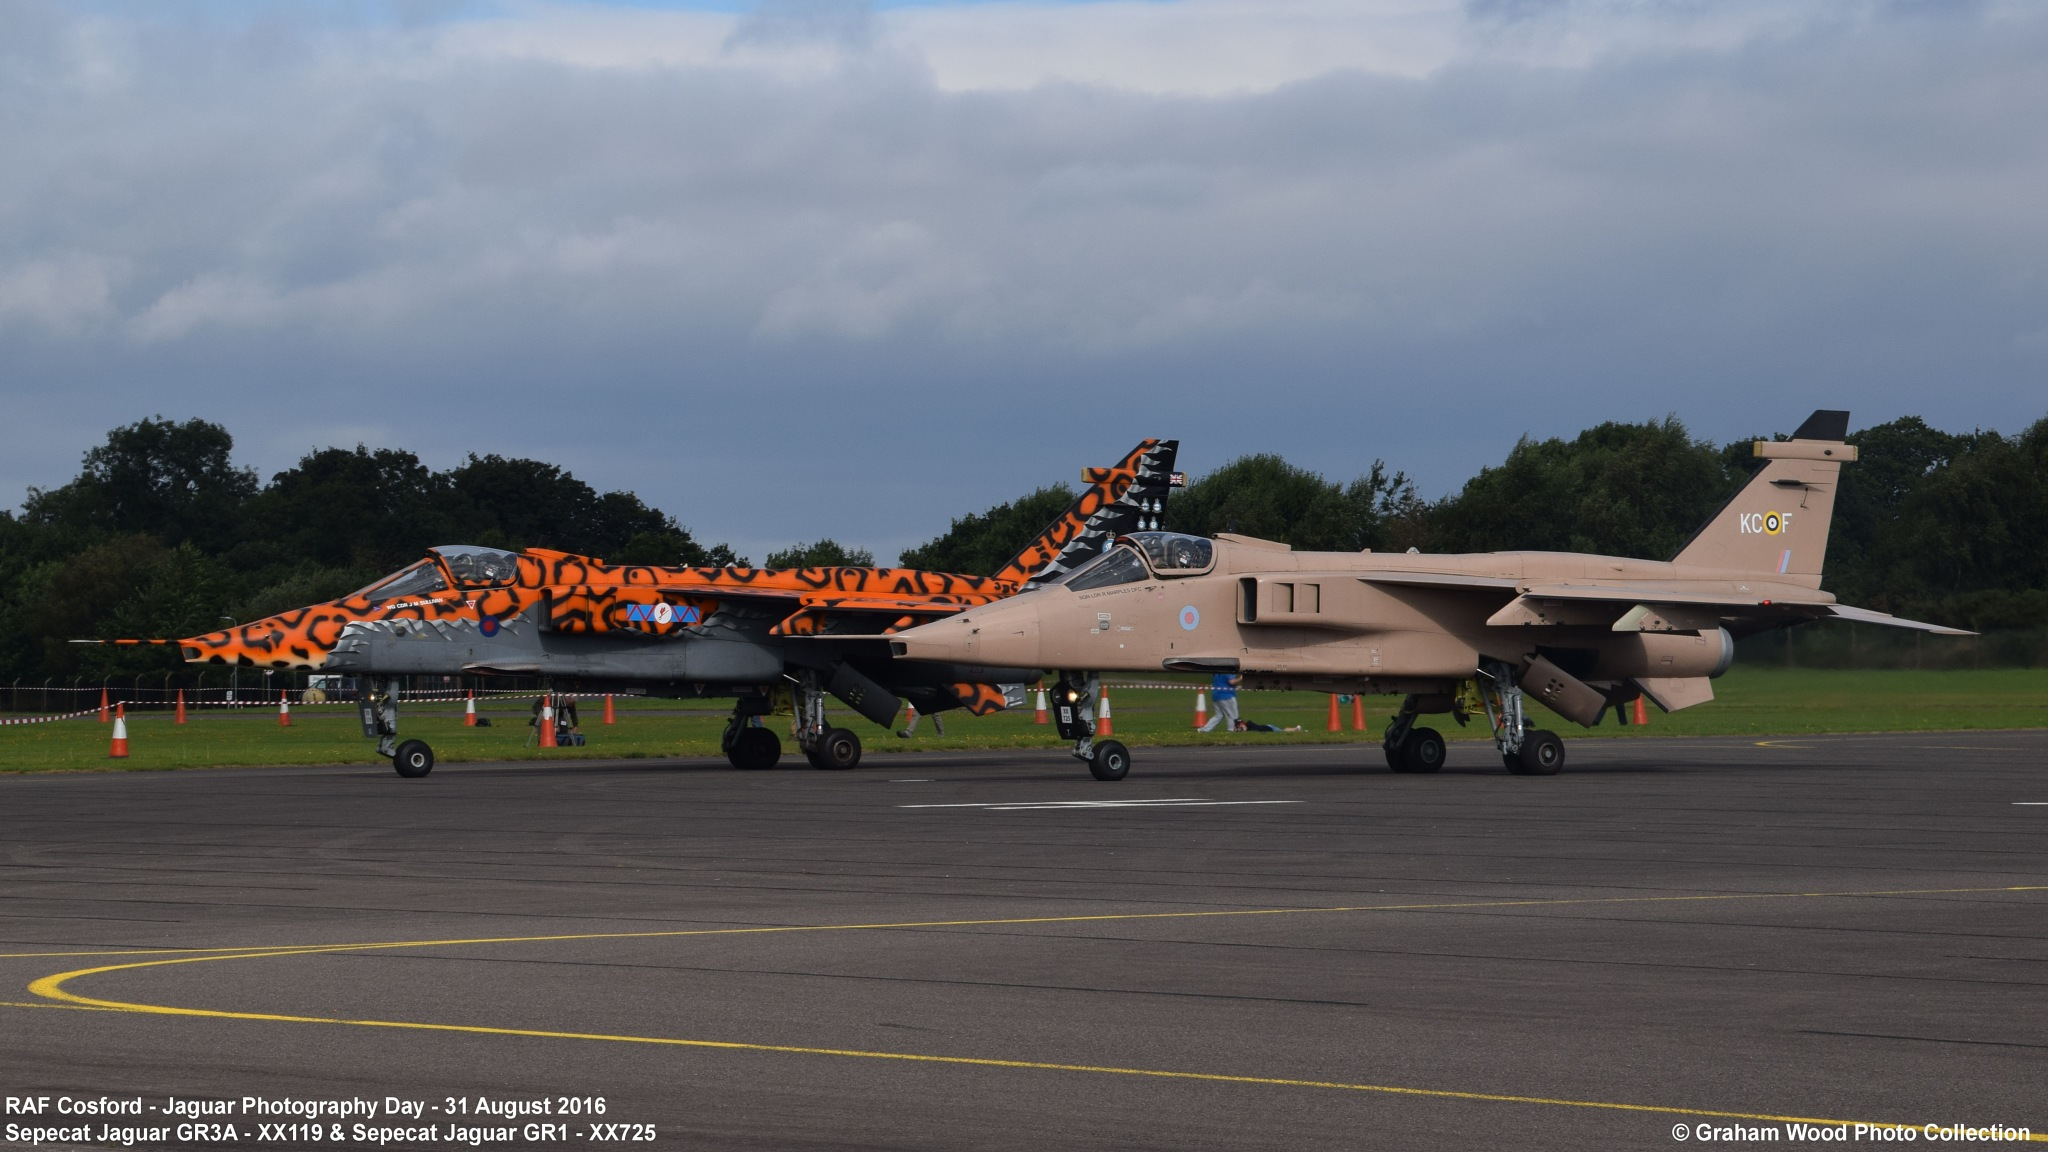 RAF Cosford - Jaguar Photography Day - 31 August 2016 by Graham Wood Photo Collection